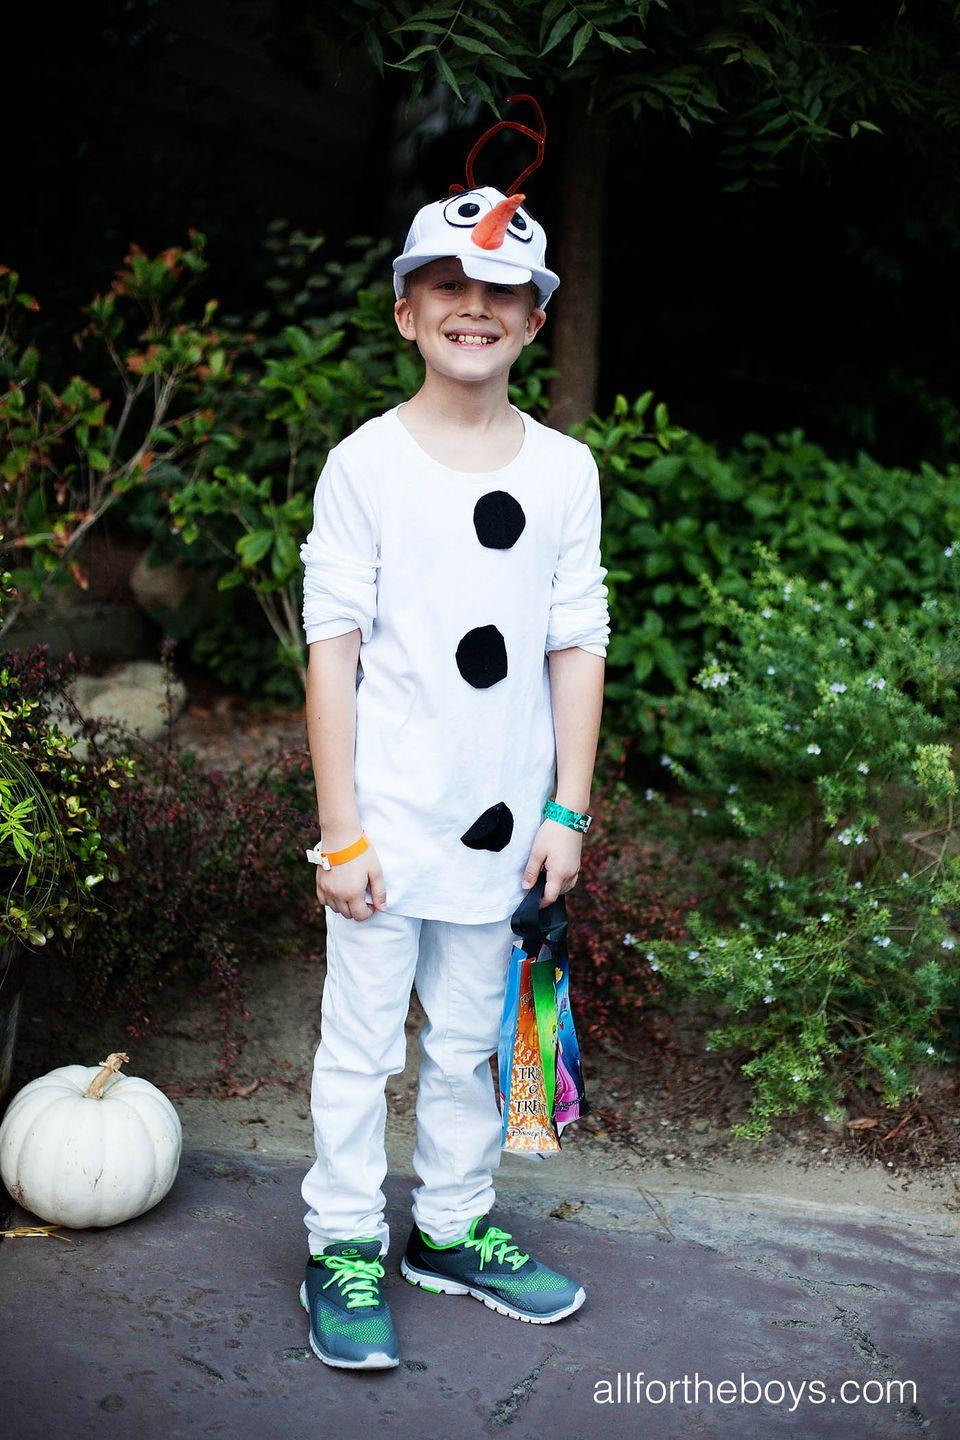 """<p>Your son likely already has the majority of this <em>Frozen</em> costume hanging in his closet. All you need to do is add a few embellishments, and he's ready to trick-or-treat.</p><p><strong>Get the tutorial at <a href=""""https://allfortheboys.com/diy-kids-olaf-costume/"""" rel=""""nofollow noopener"""" target=""""_blank"""" data-ylk=""""slk:All for the Boys"""" class=""""link rapid-noclick-resp"""">All for the Boys</a>.</strong> </p>"""